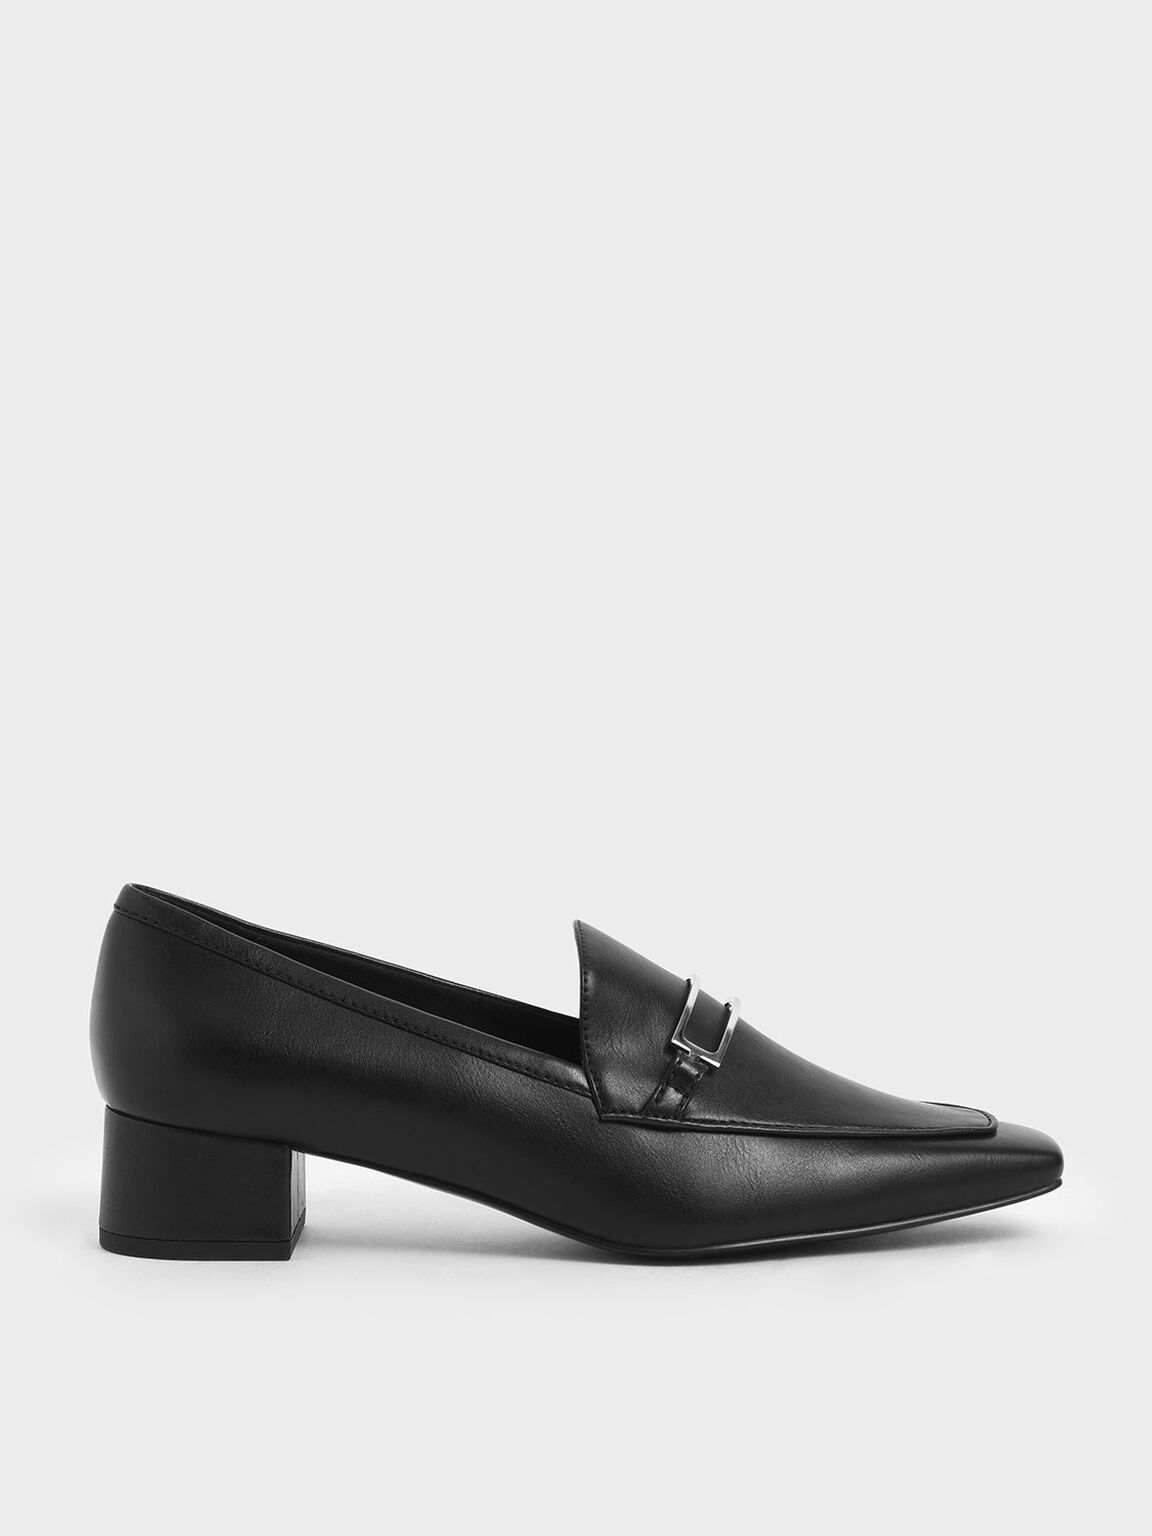 Metal Accent Block Heel Loafers, Black, hi-res